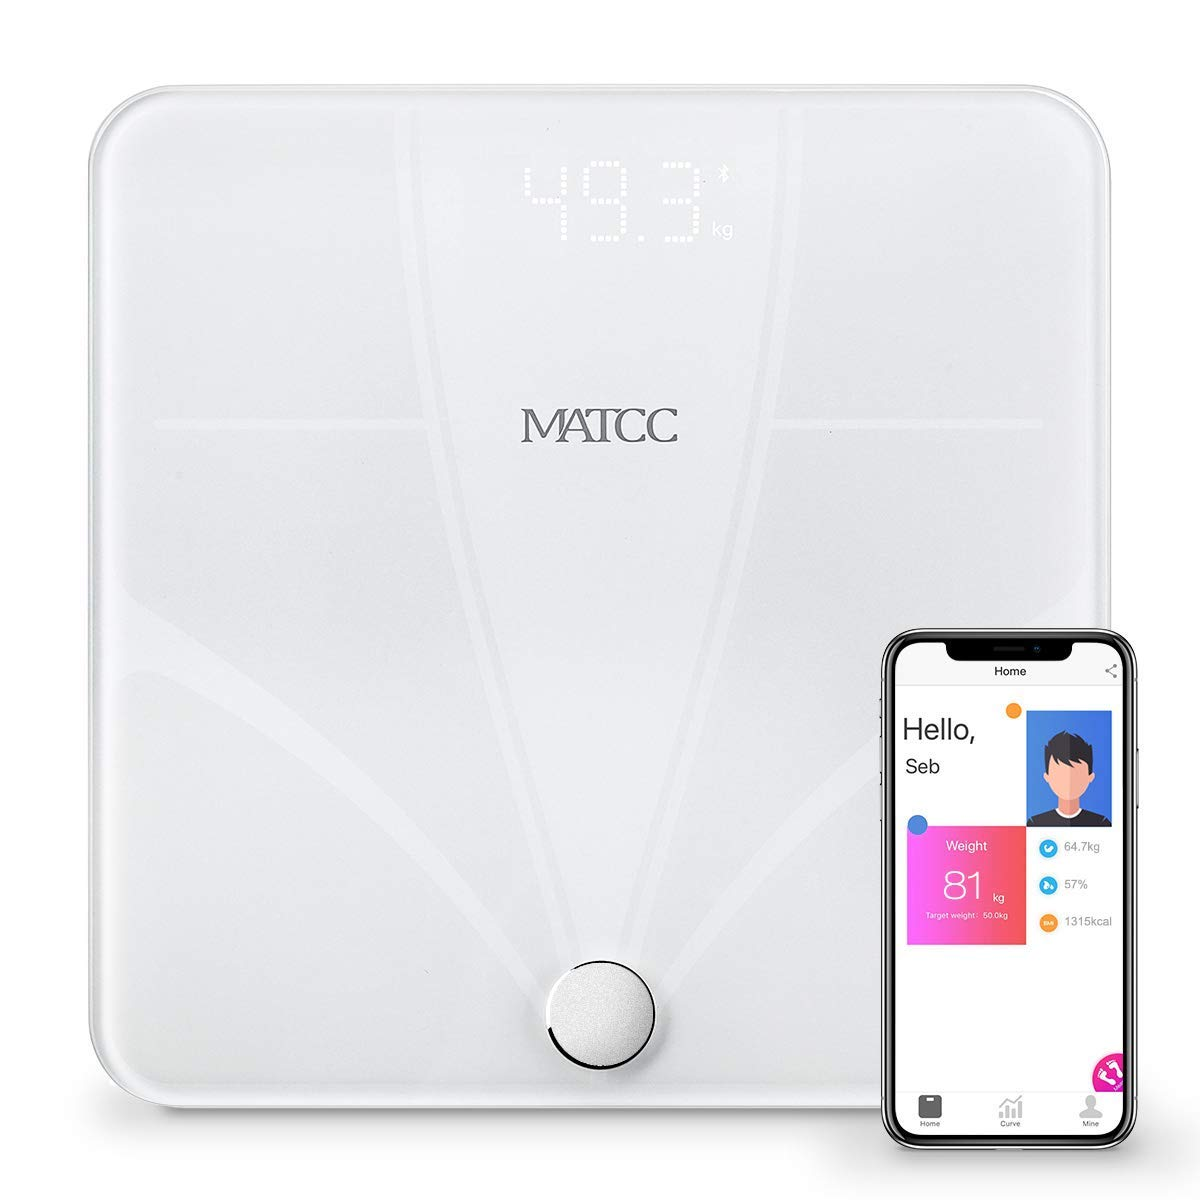 MATCC Bluetooth Body Fat Scales Digital Bathroom Weight Scale for High Precision Body Composition Measurement ITO Technology Smart BMI Scales with APP 396lbs White